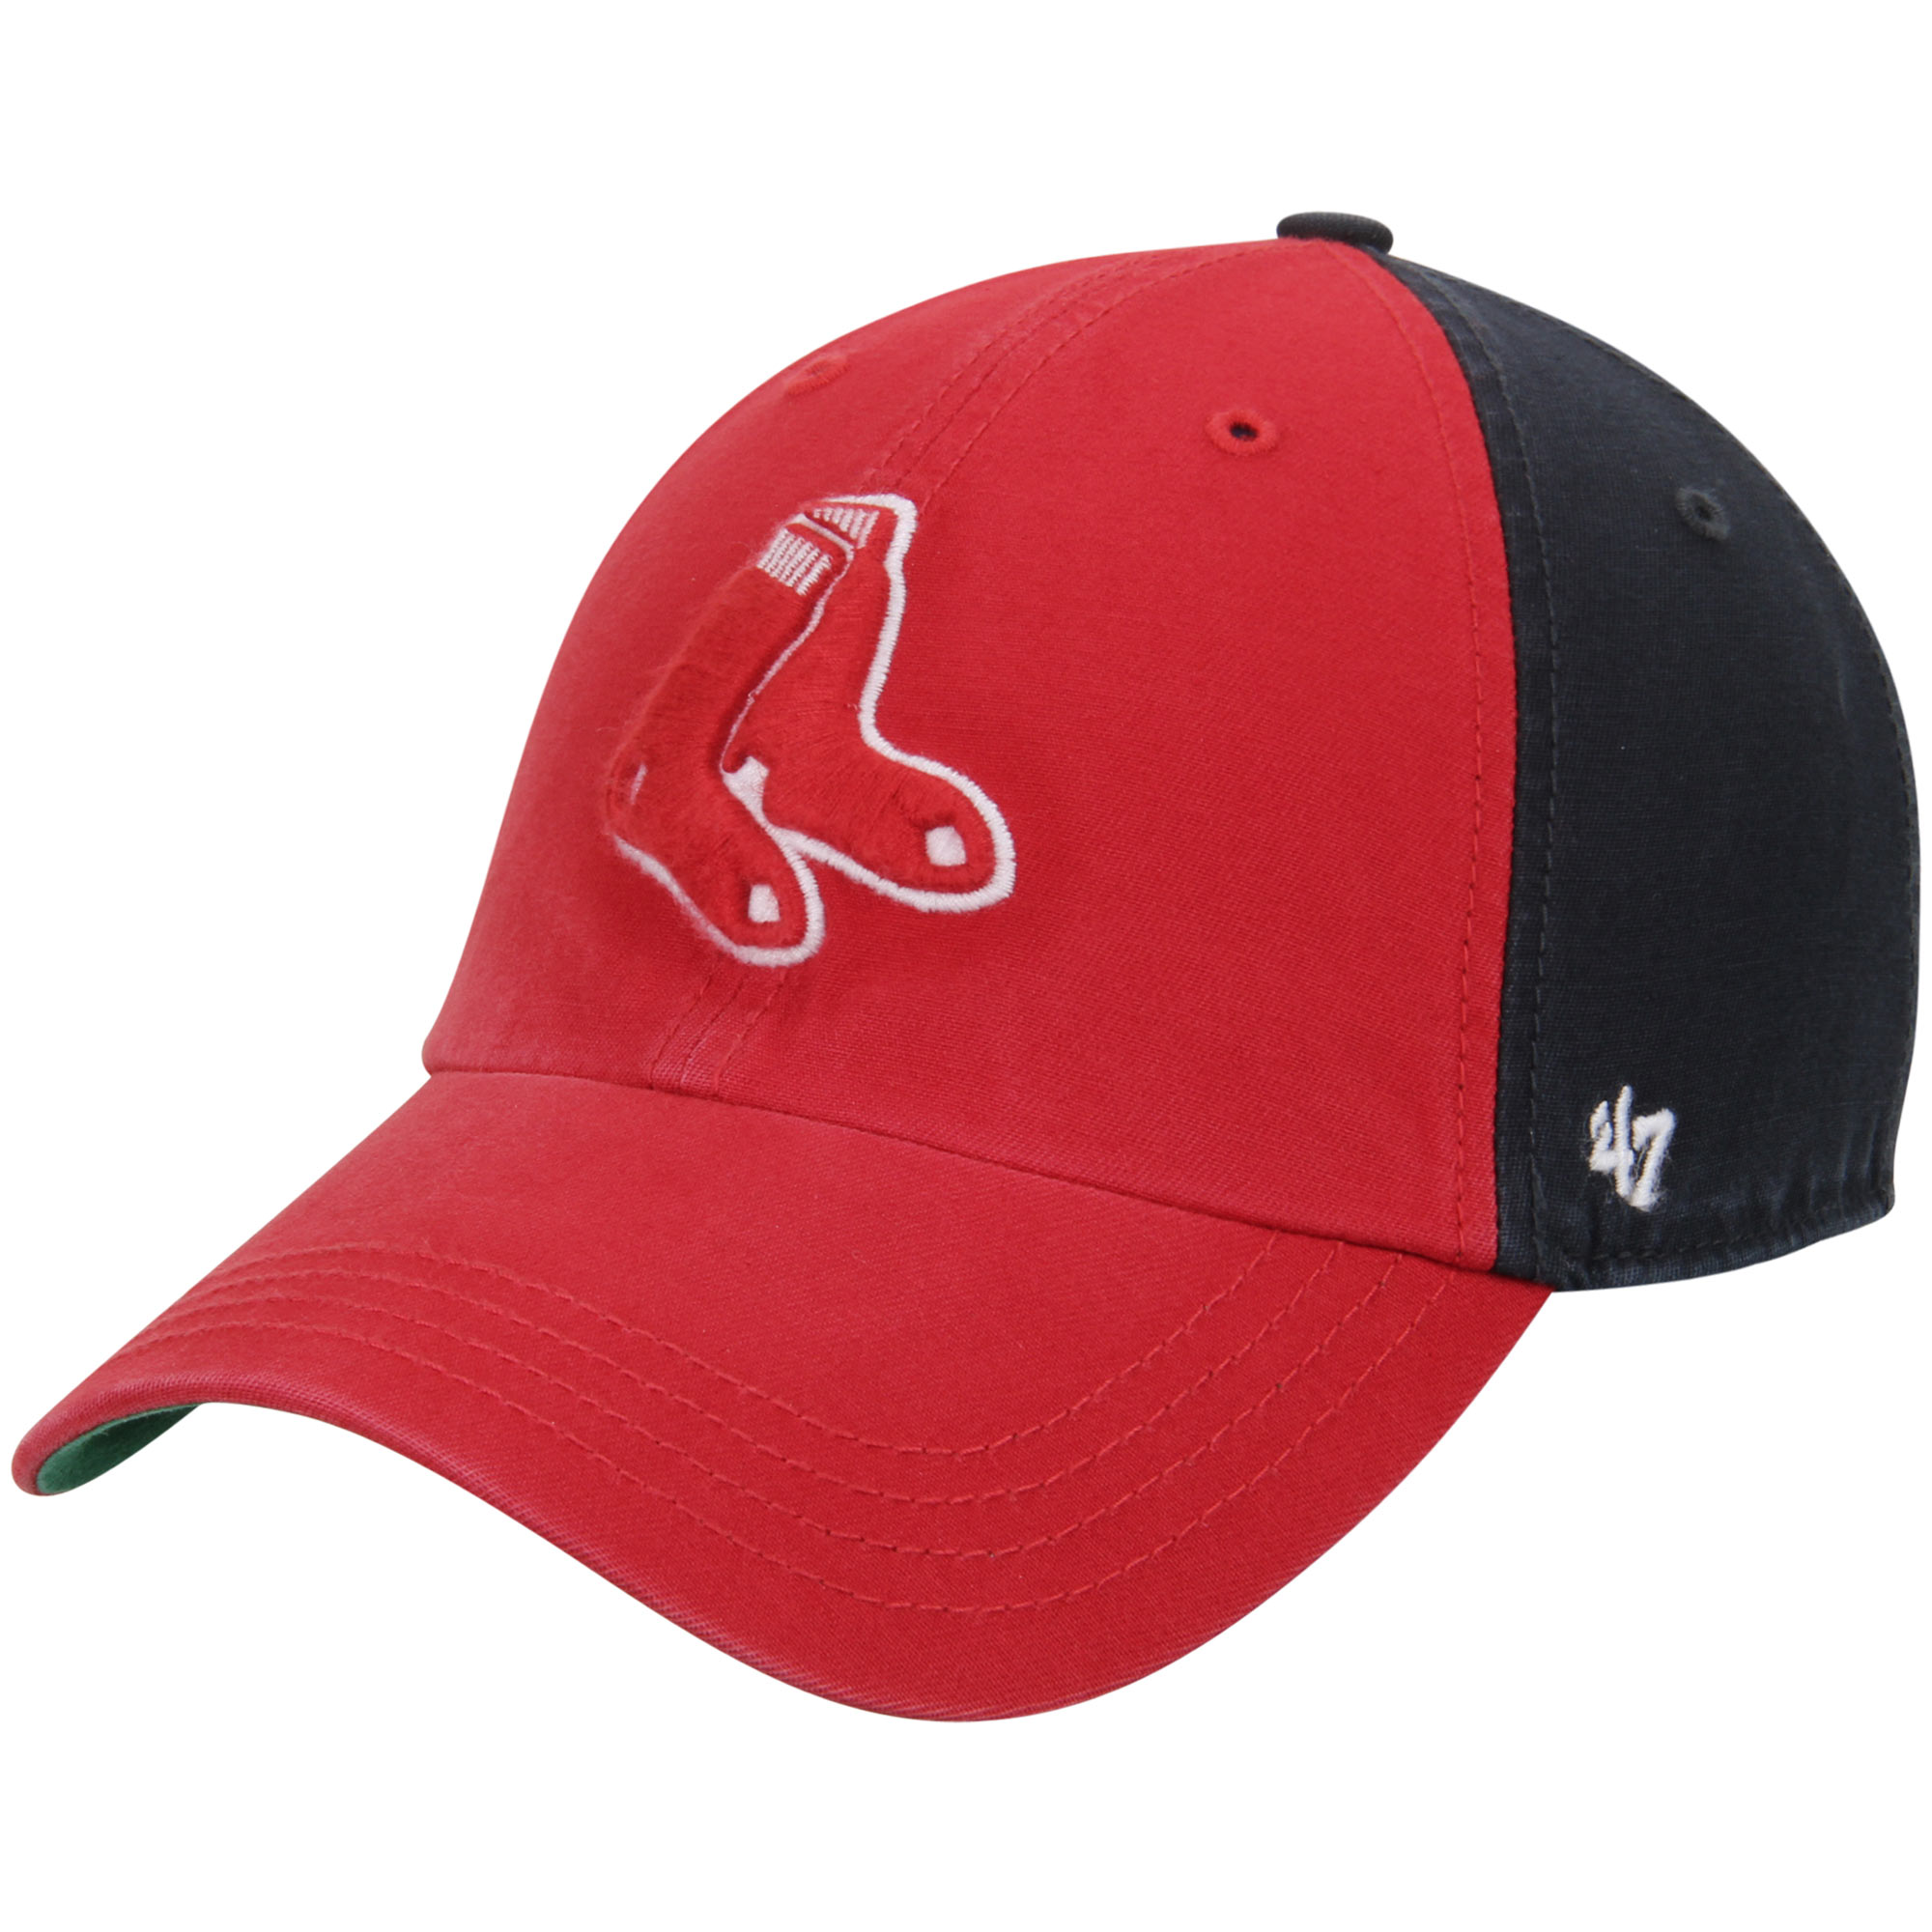 Boston Red Sox '47 Flagstaff Clean Up Adjustable Hat - Red/Navy - OSFA